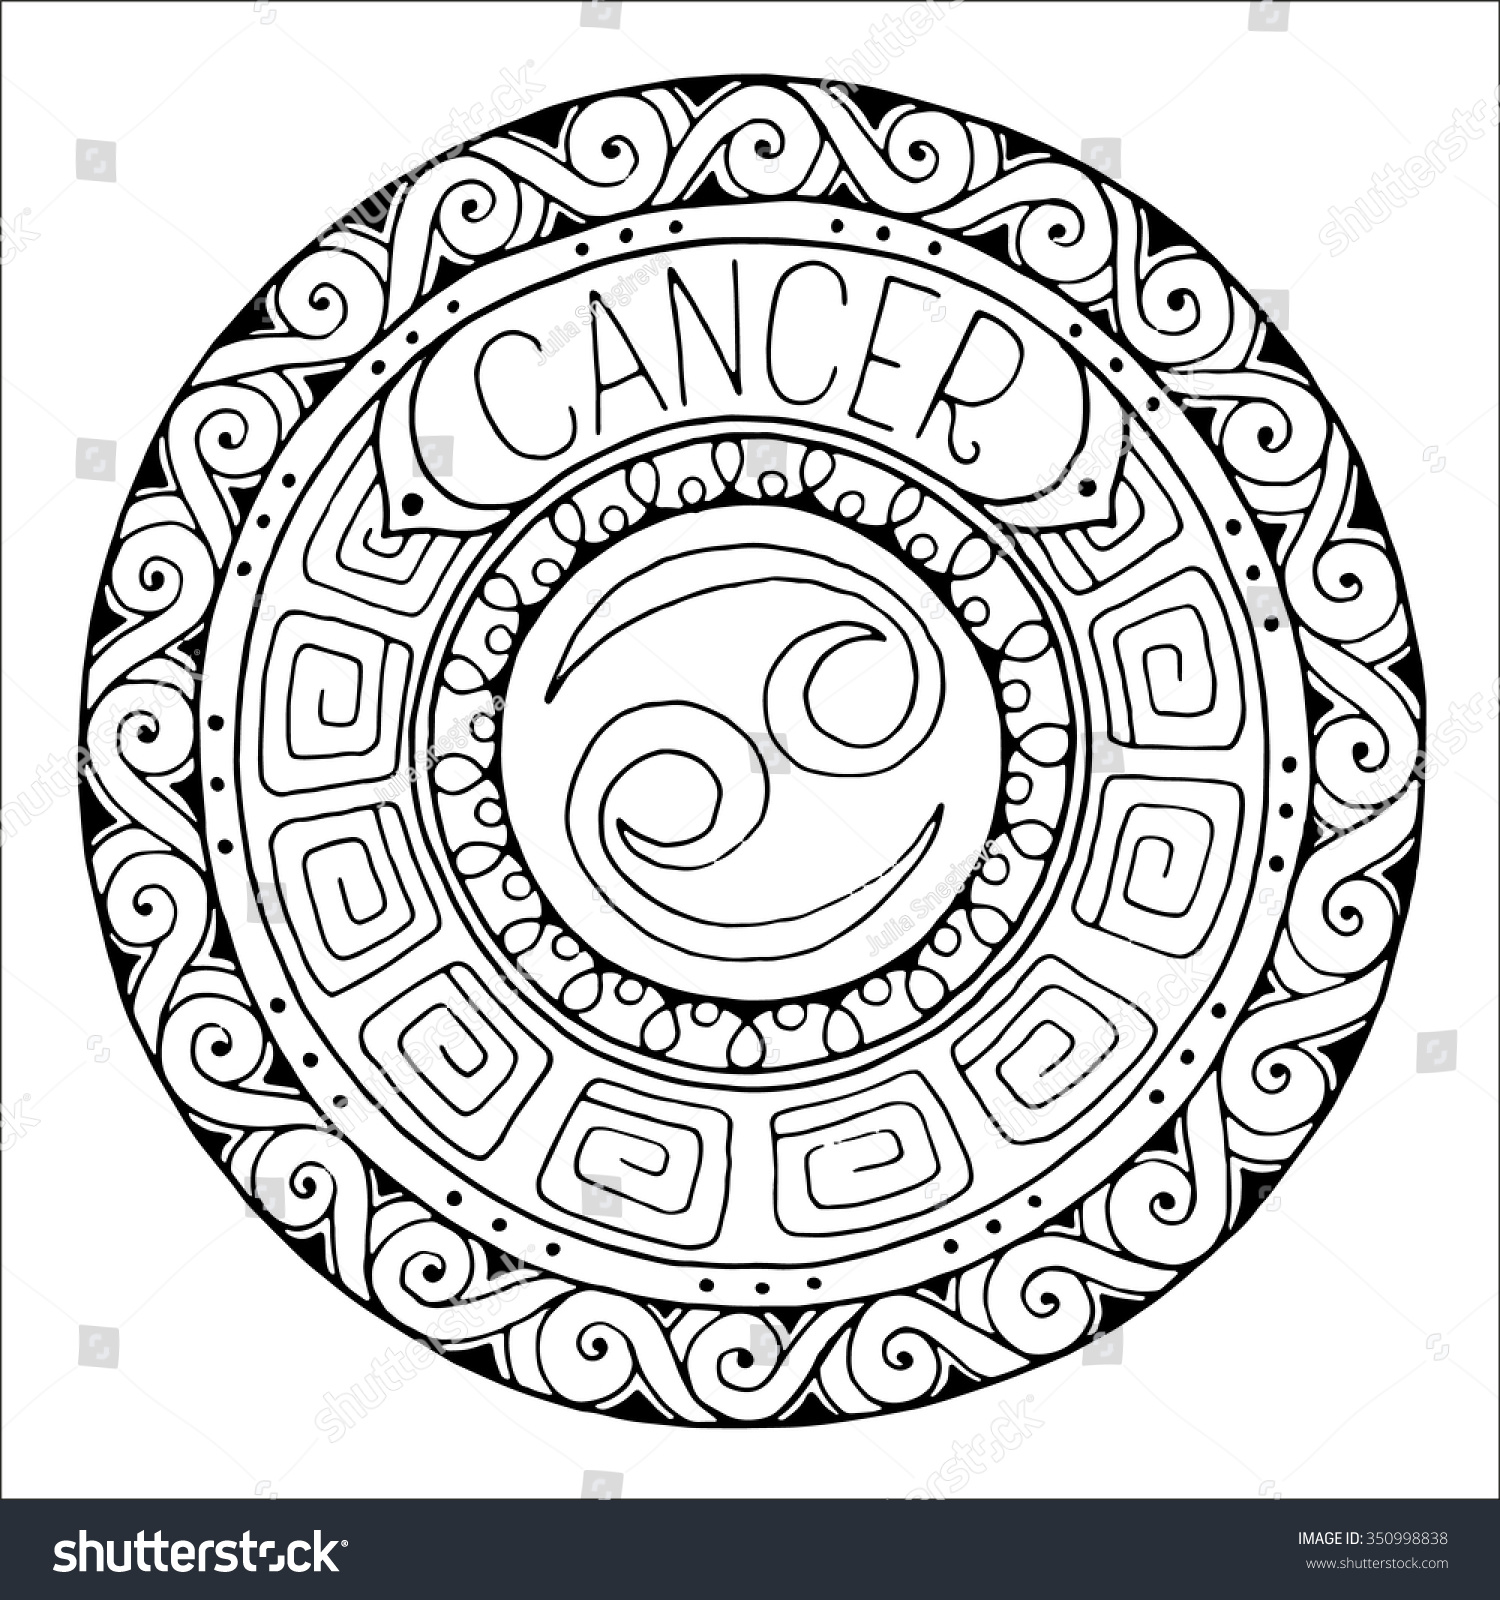 Zodiac Sign Cancer Constellation